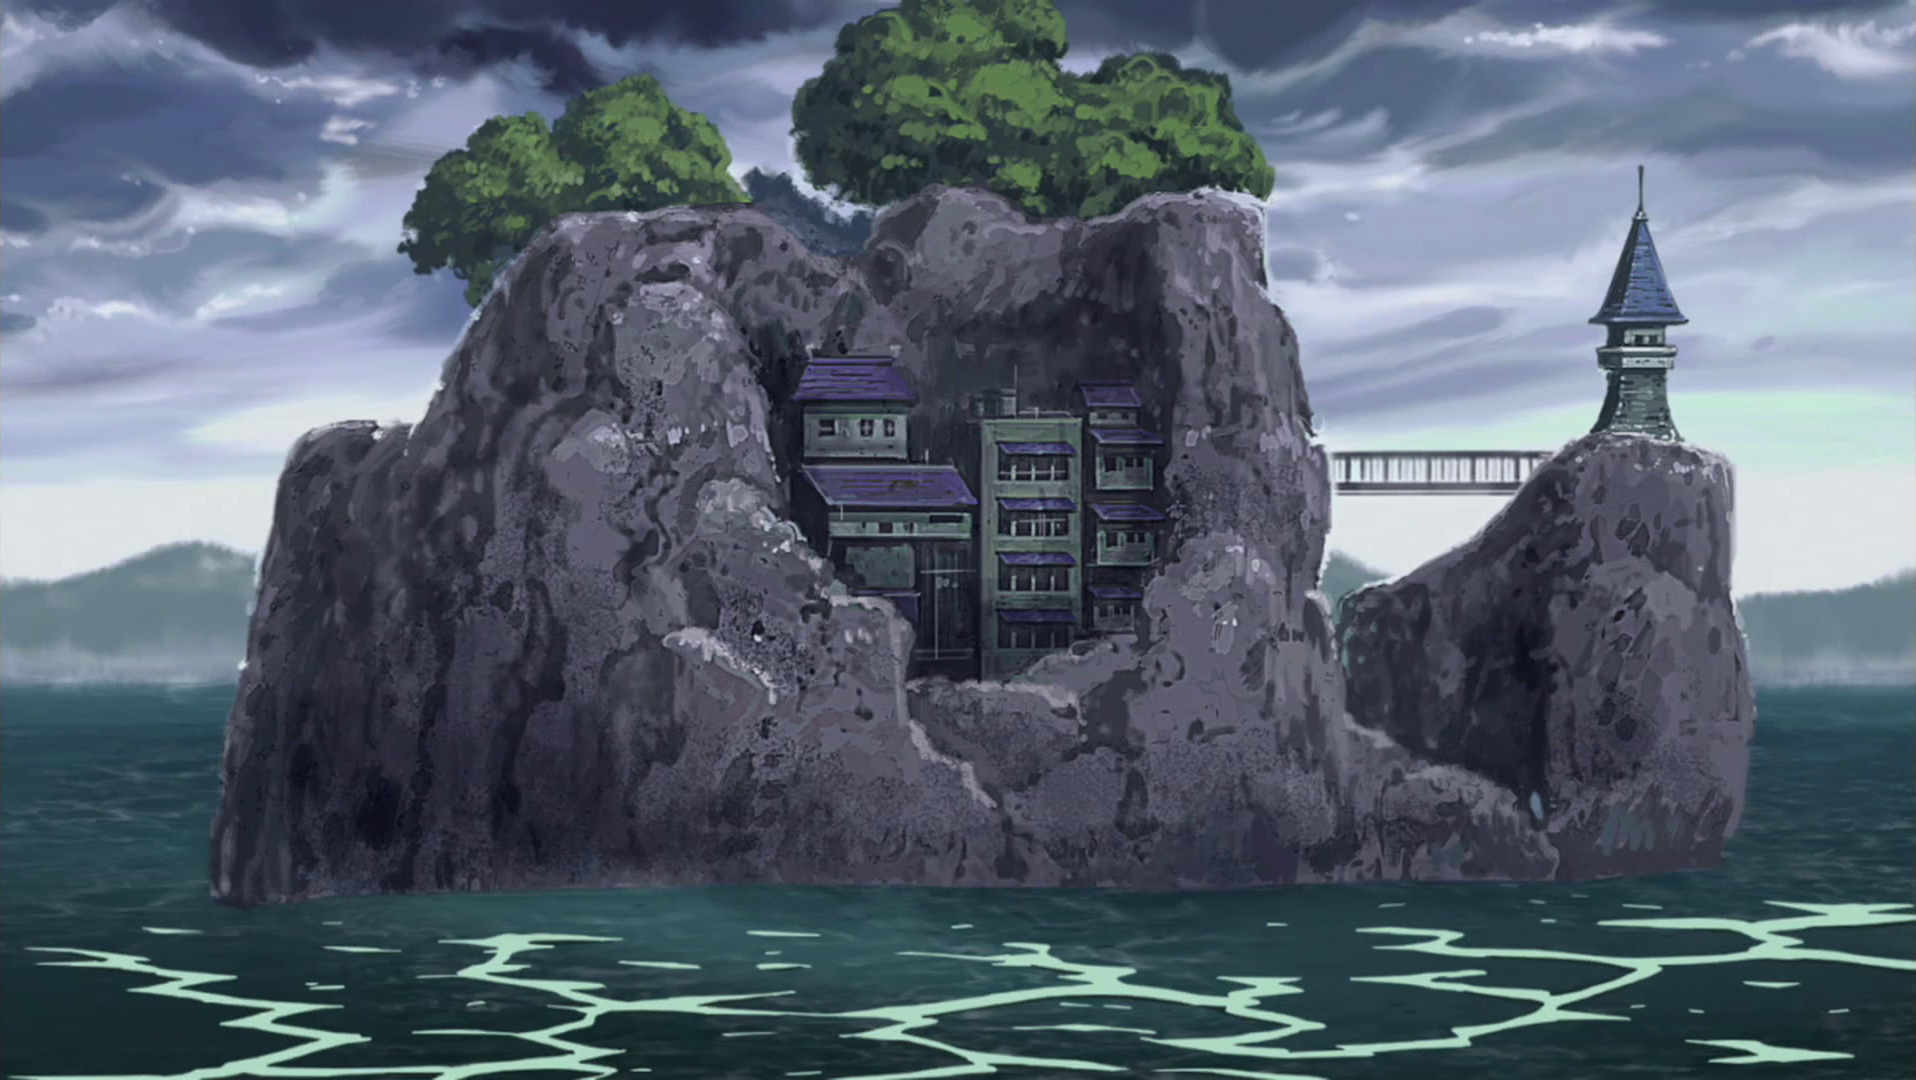 http://images4.wikia.nocookie.net/__cb20130609172941/naruto/images/d/d1/Orochimaru%27s_Island_Laboratory_anime.png